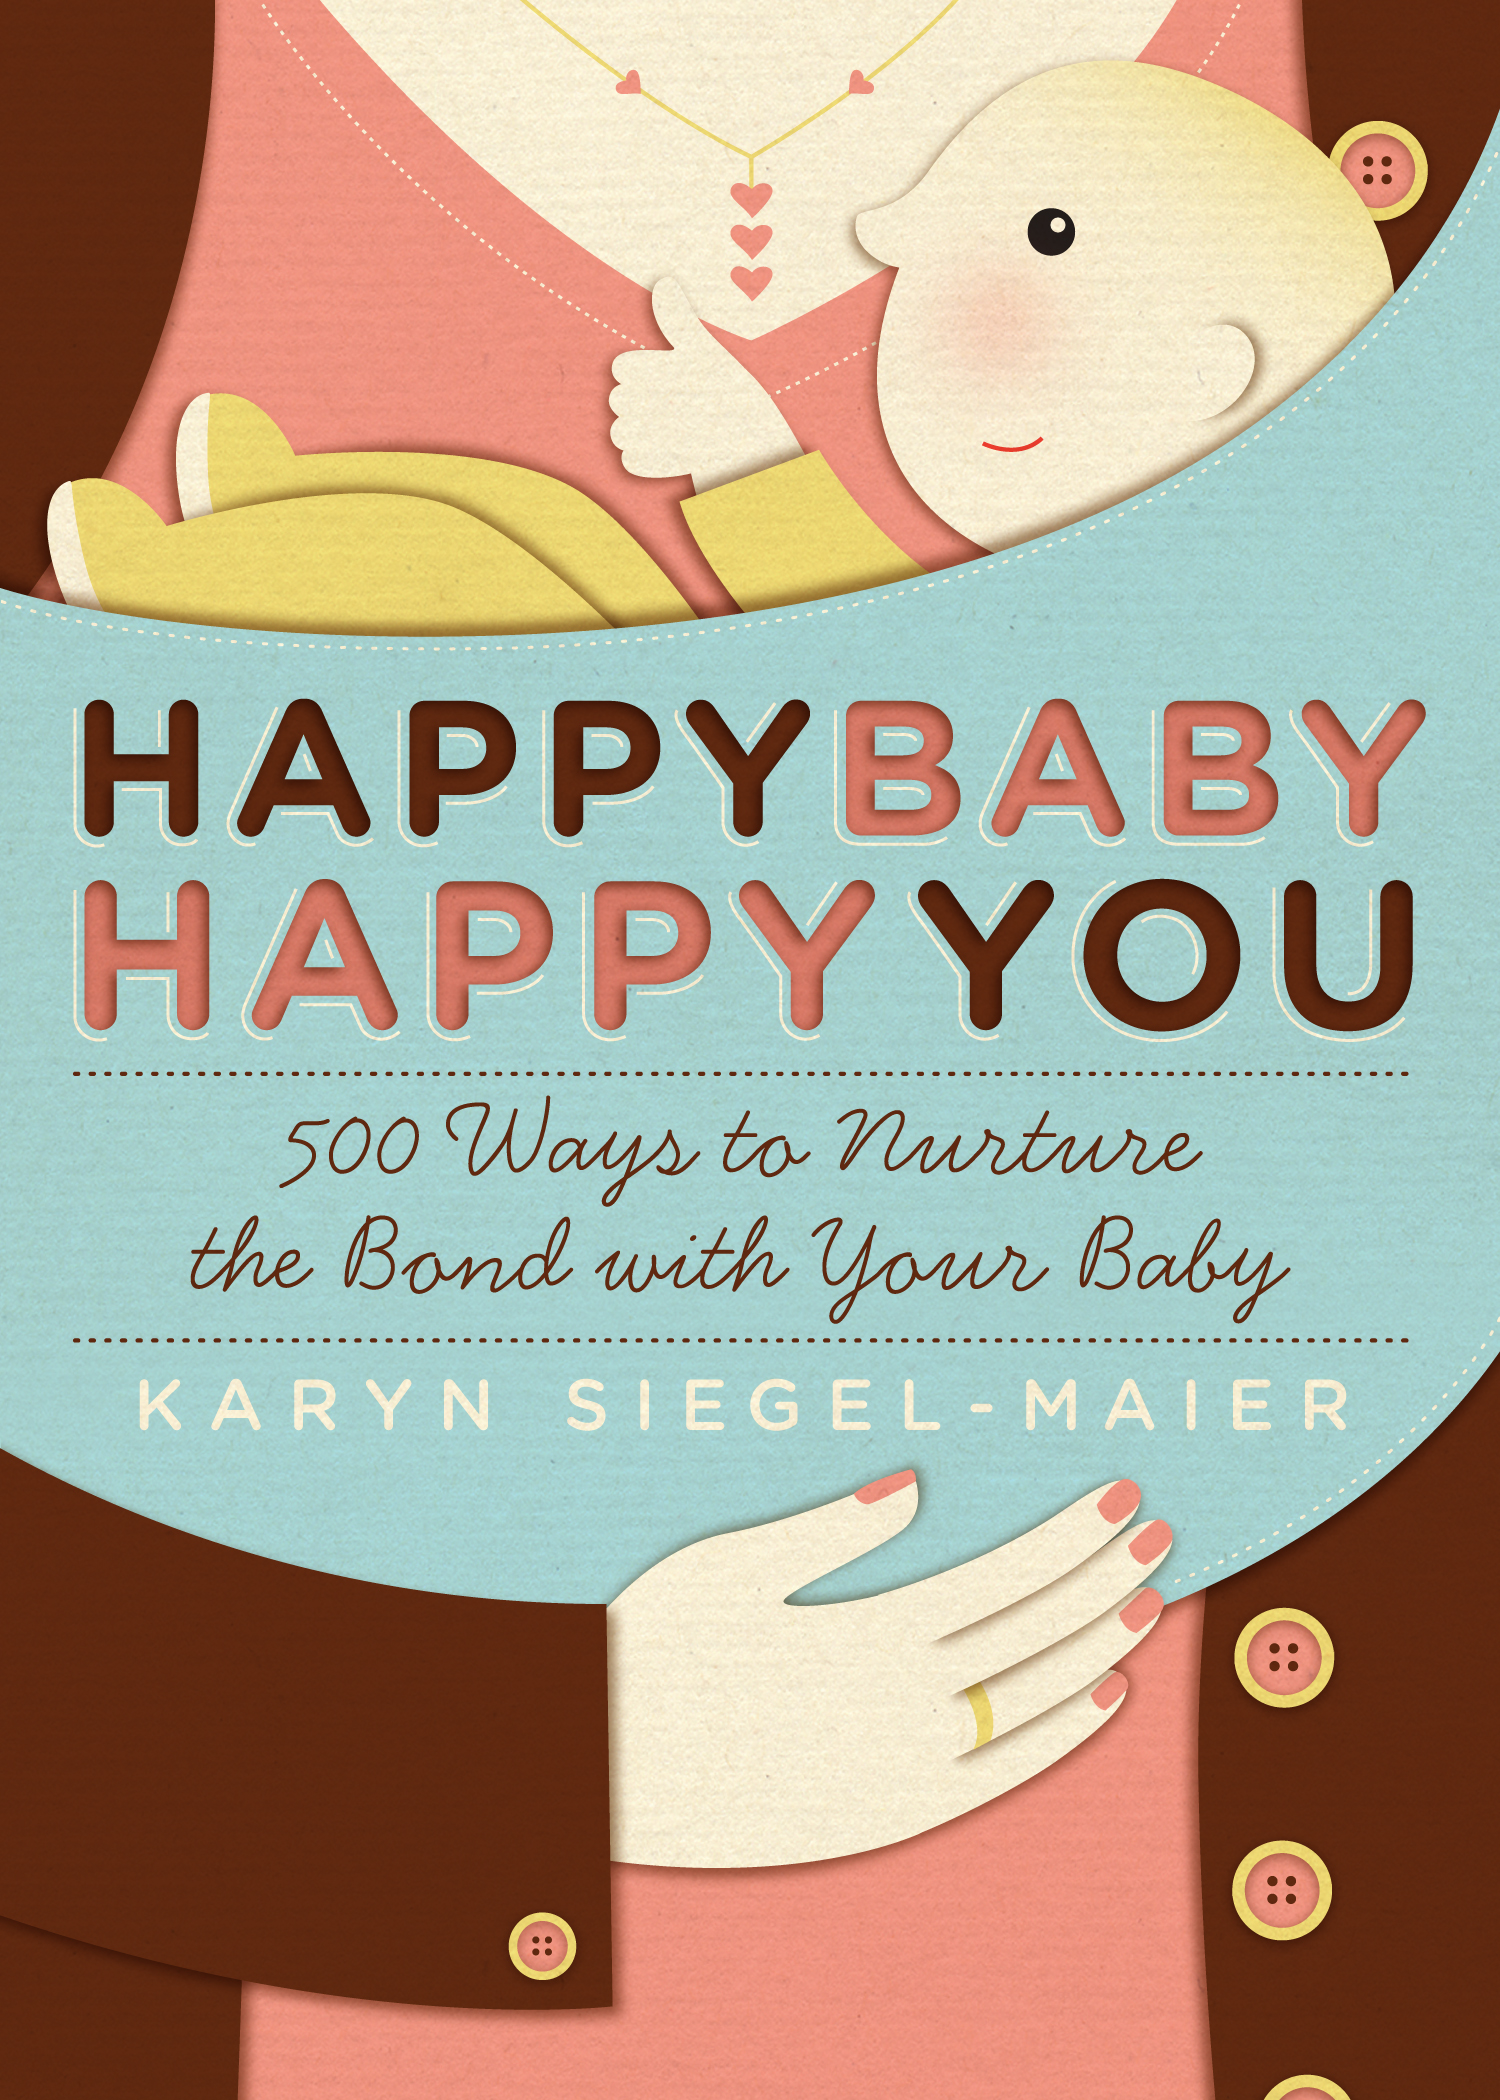 Happy Baby, Happy You 500 Ways to Nurture the Bond with Your Baby - Karyn Siegel-Maier